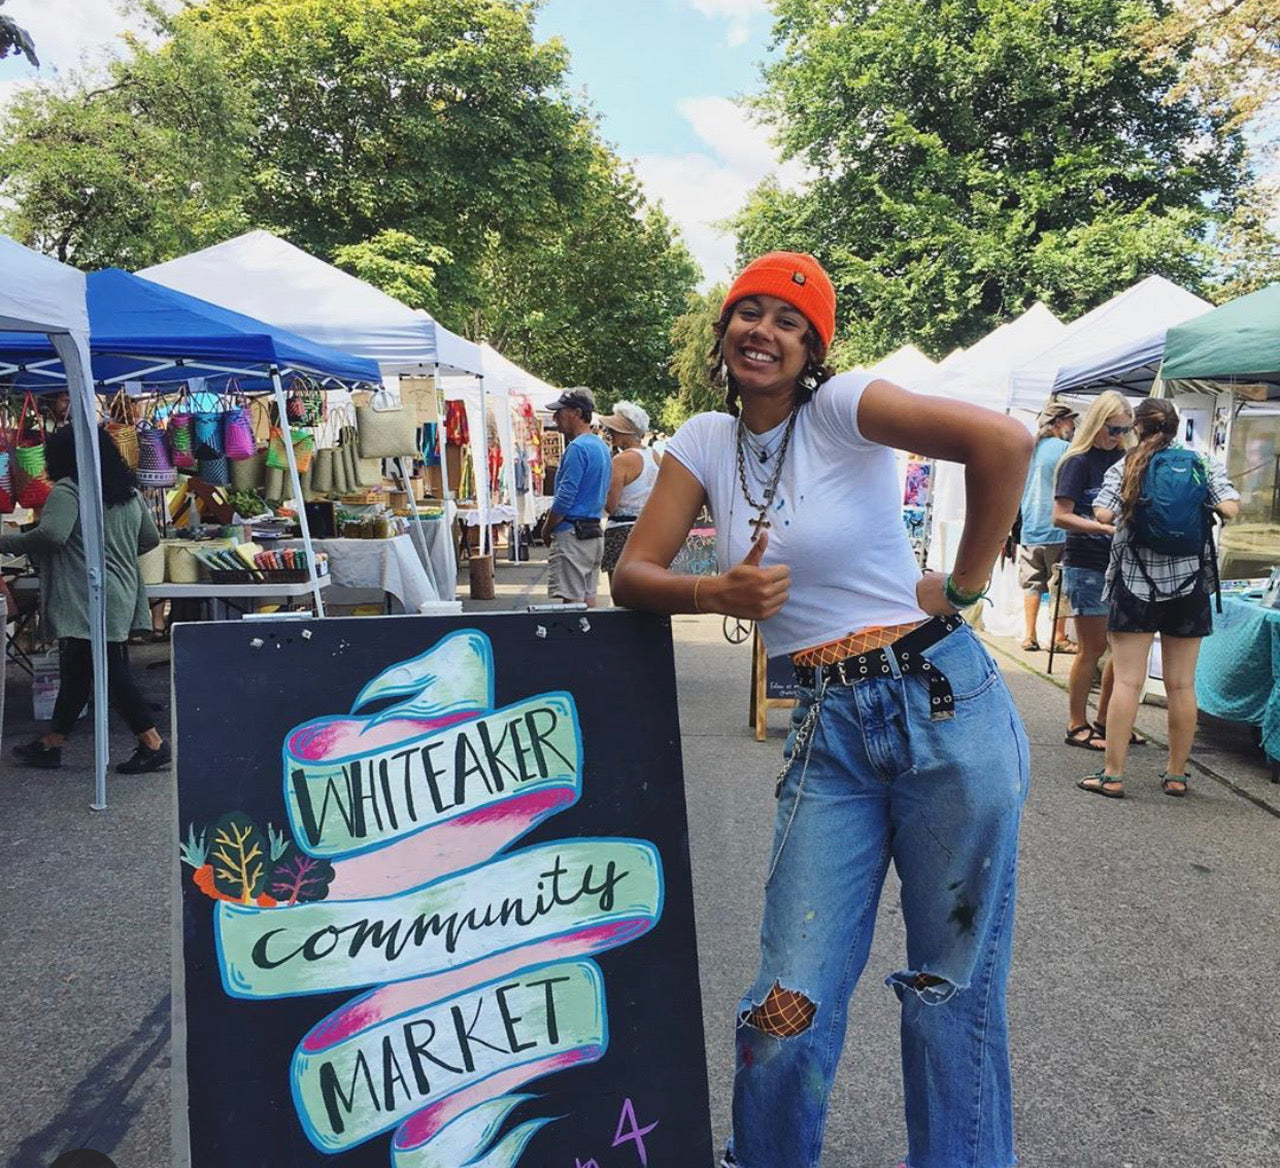 The Whiteaker Market and supporting BIPOC in our community